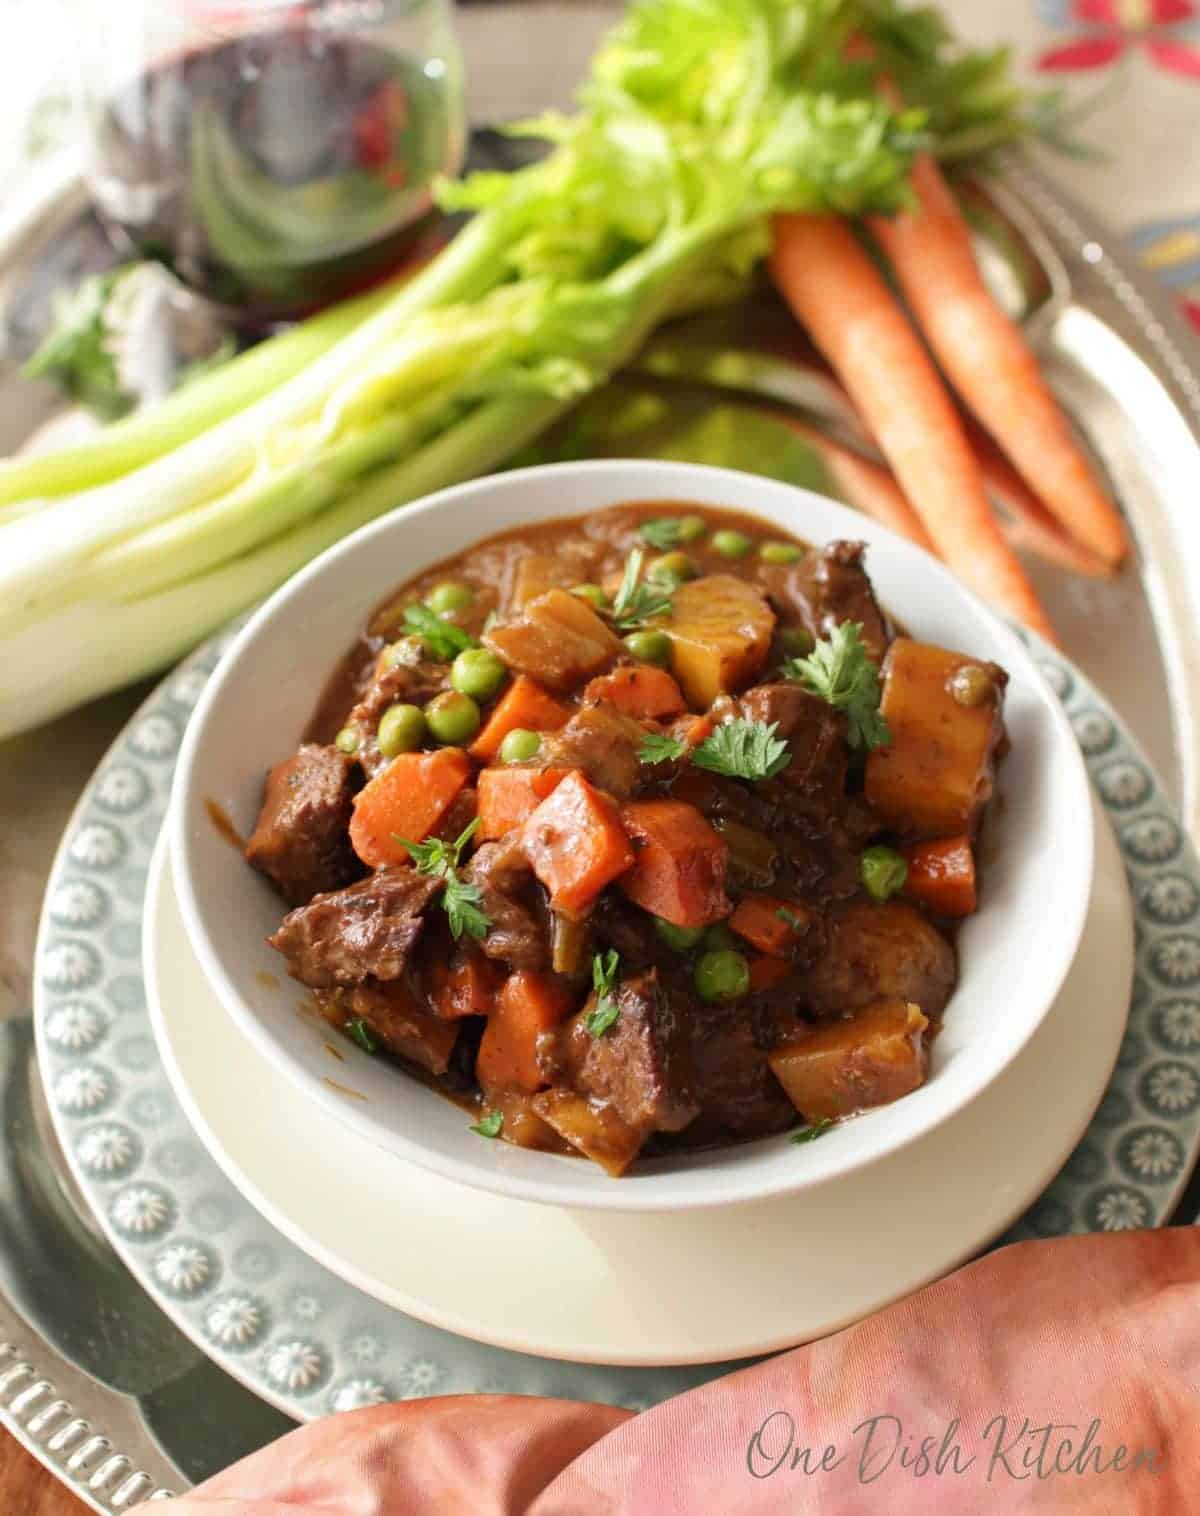 Overhead view of a bowl of beef stew next to two carrots, a stalk of celery, and a glass of red wine all on a metal tray